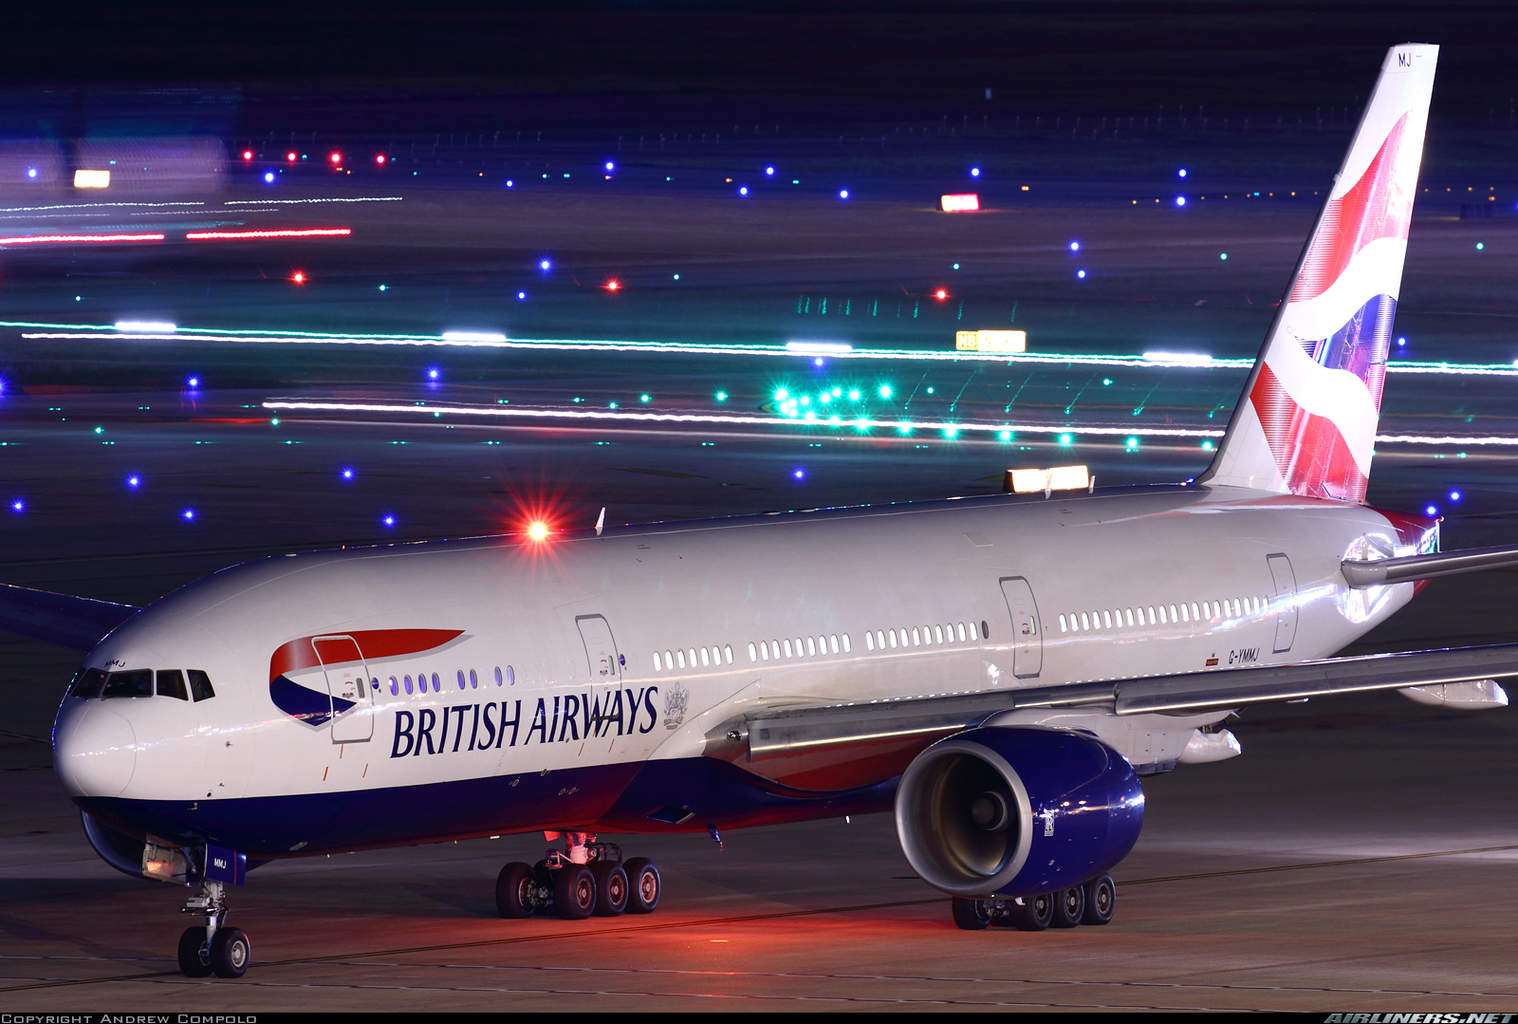 British Airways increases seat count in A320 and Boeing 777-200 fleets